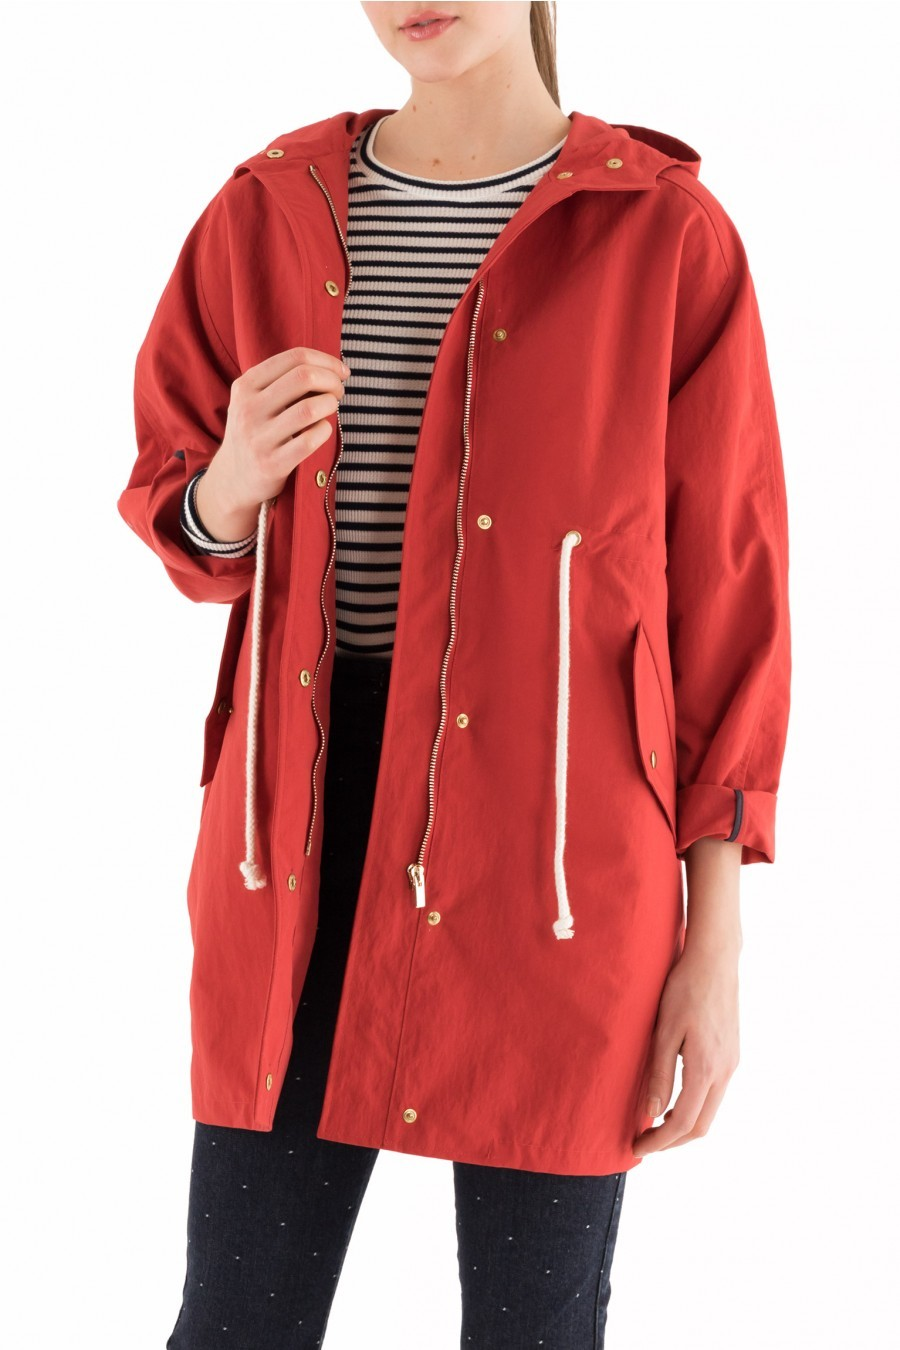 red spring jacket lazzari